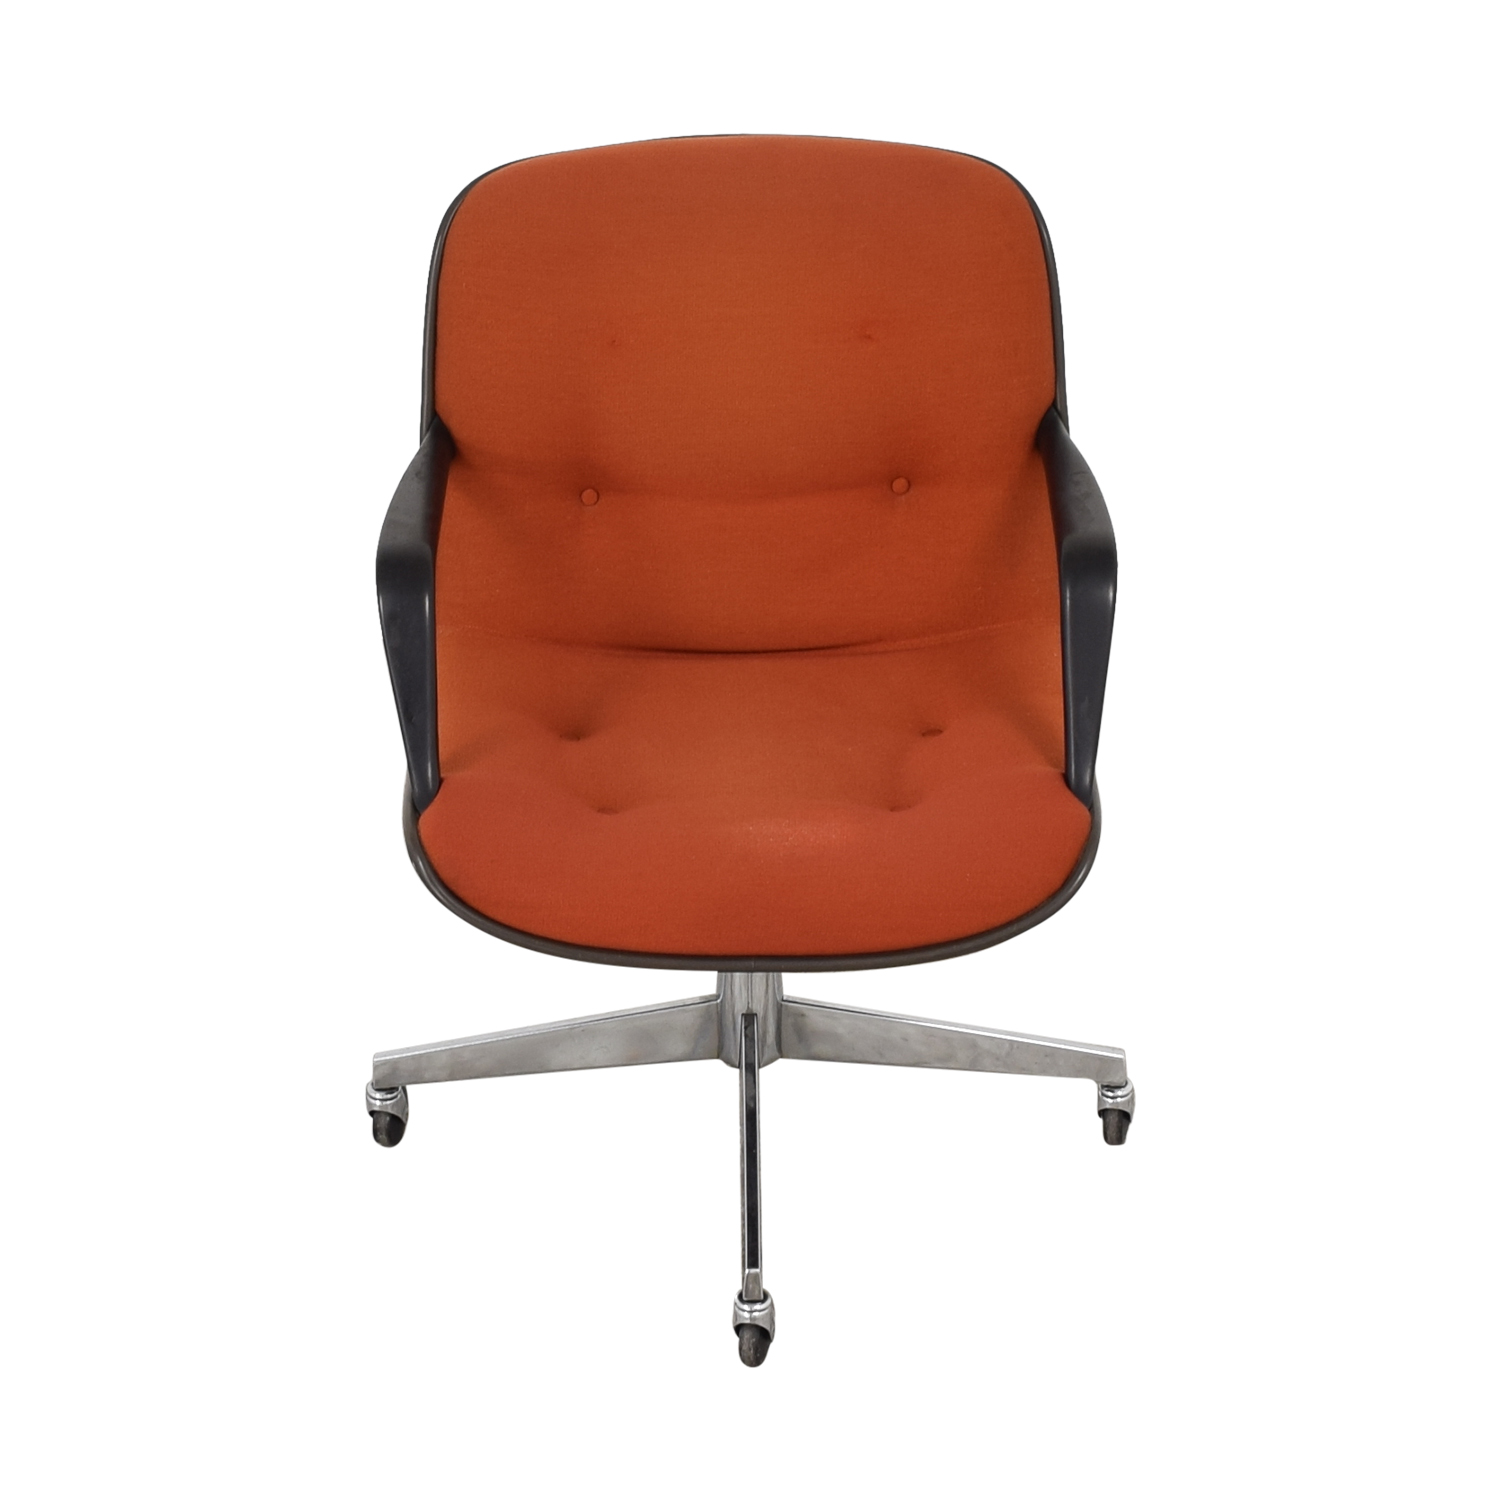 Steelcase 451 Supervisors Desk Chair / Home Office Chairs